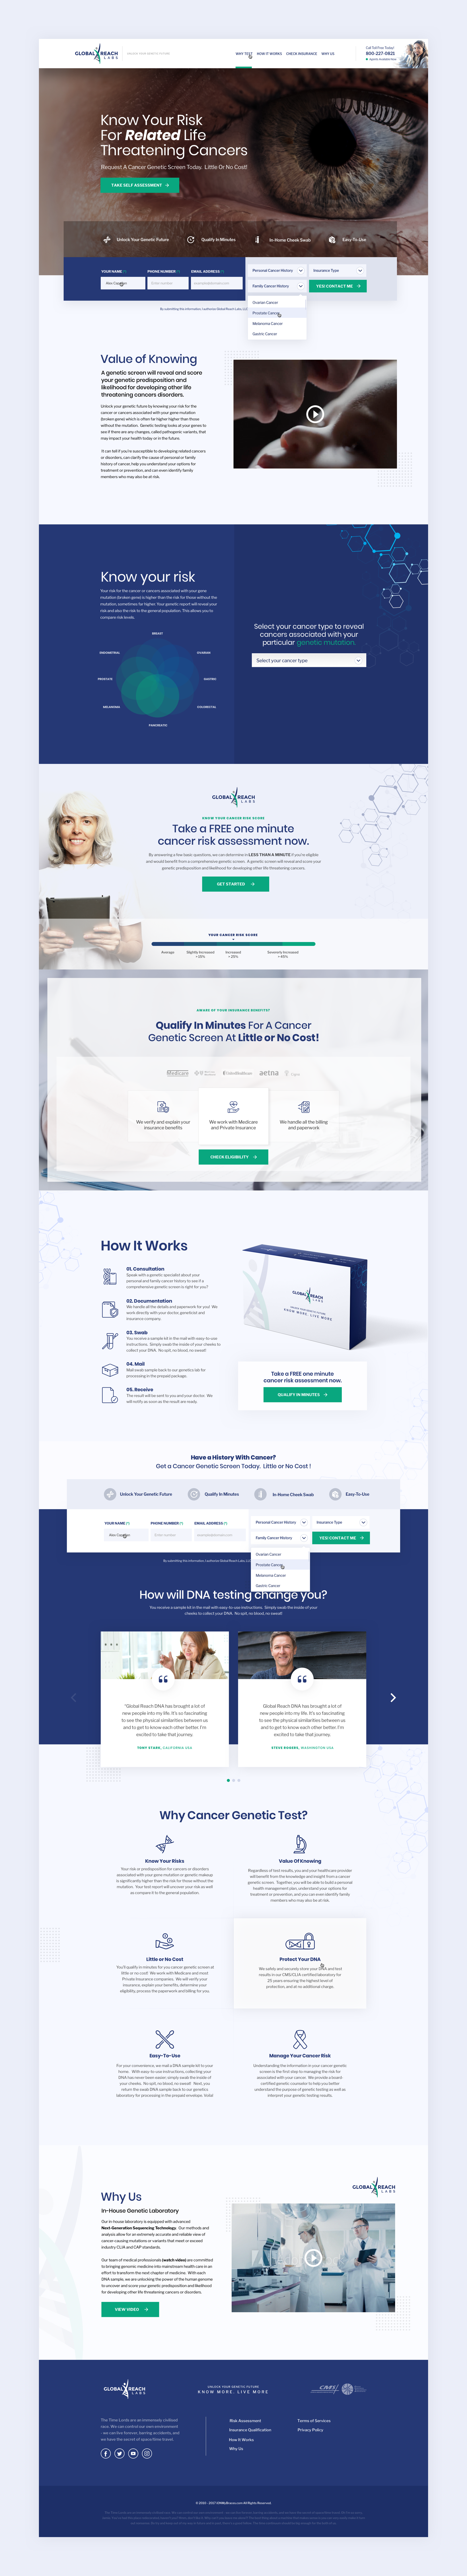 iONMyHealth - One page web design